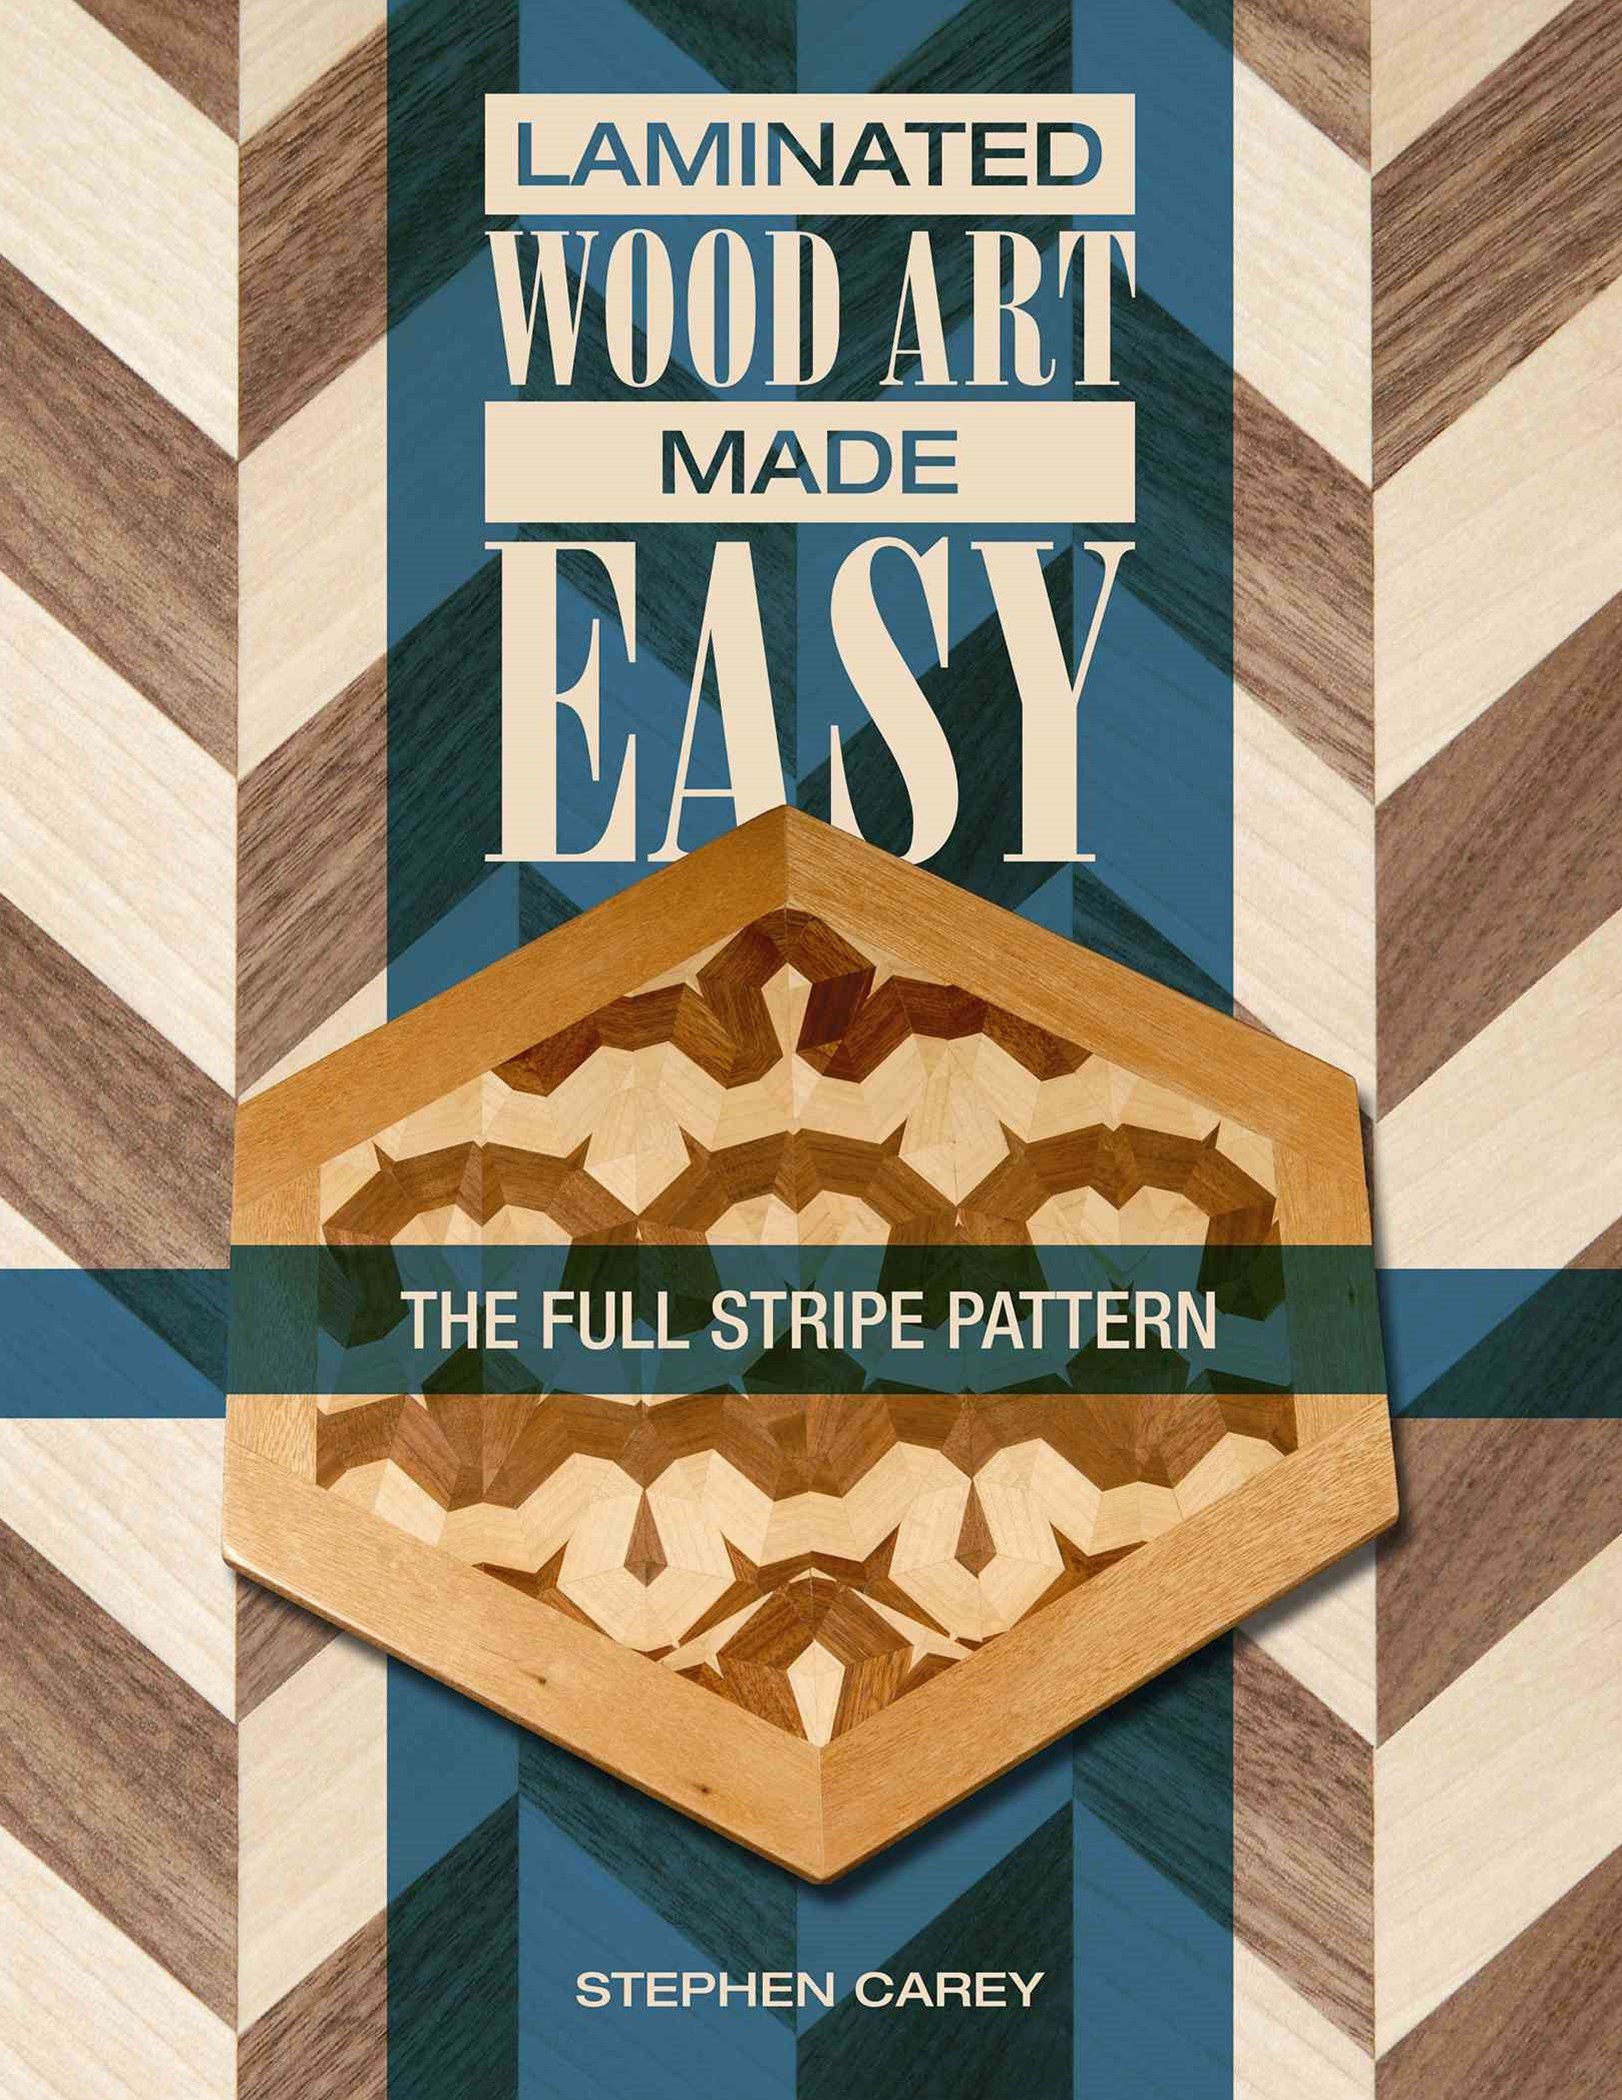 Laminated Wood Art Made Easy: The Full Stripe Pattern